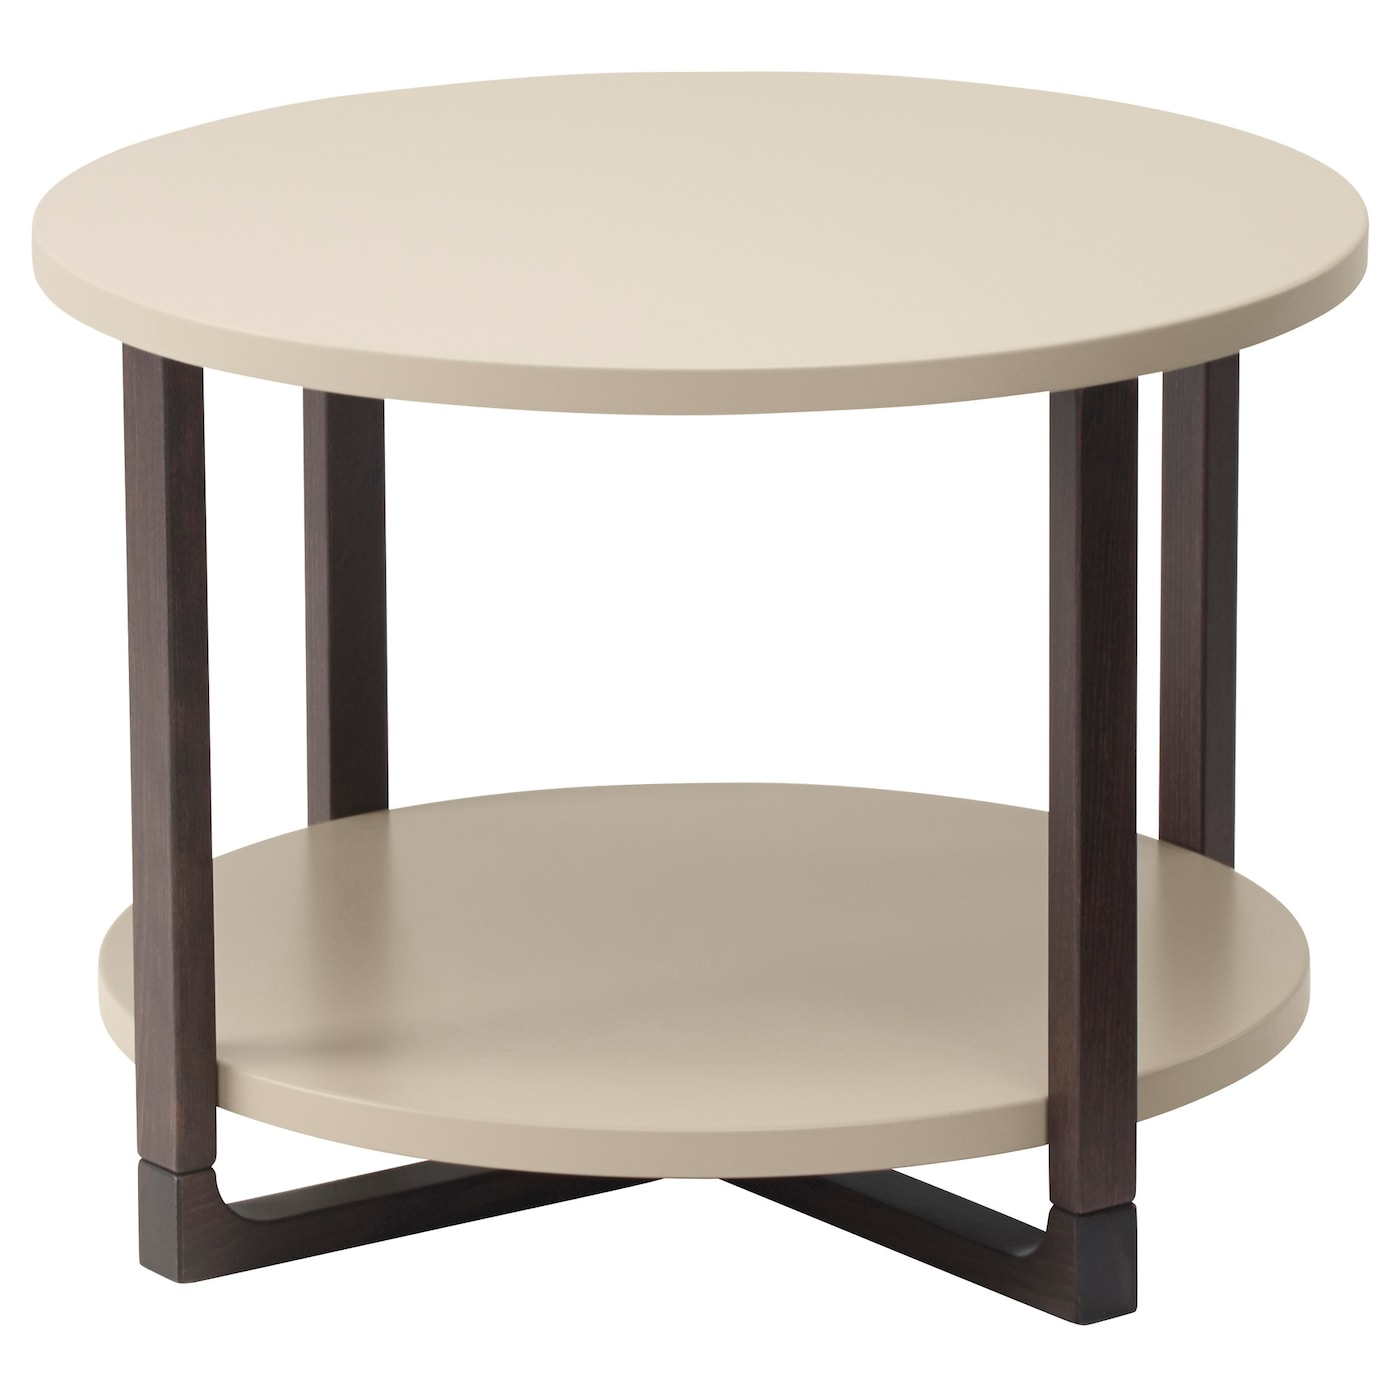 Rissna side table beige 60 cm ikea - Table ronde blanc ...